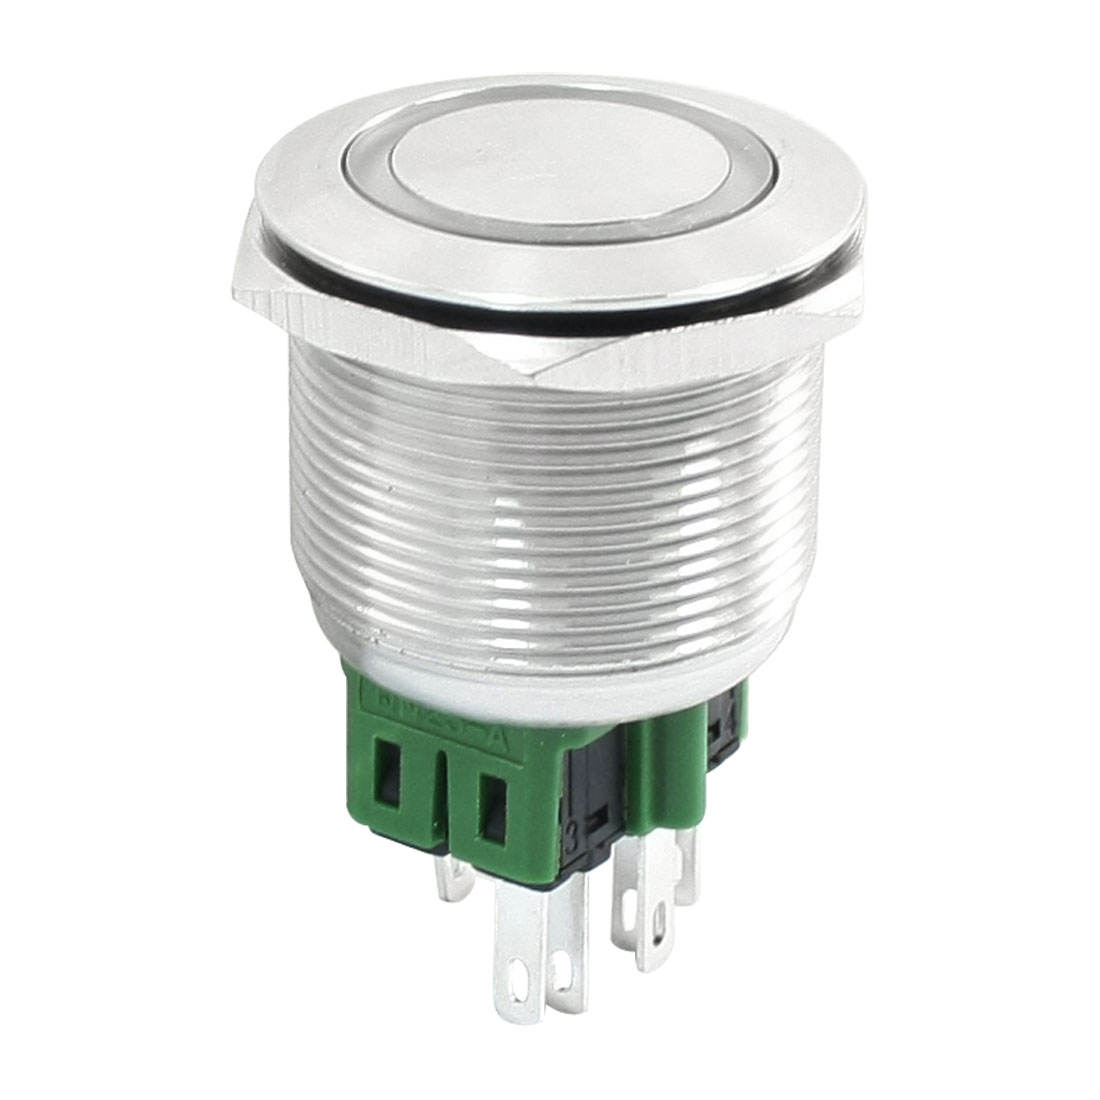 SPDT 25mm Mounting Green Ring LED Light 24V Momentary Button Switch